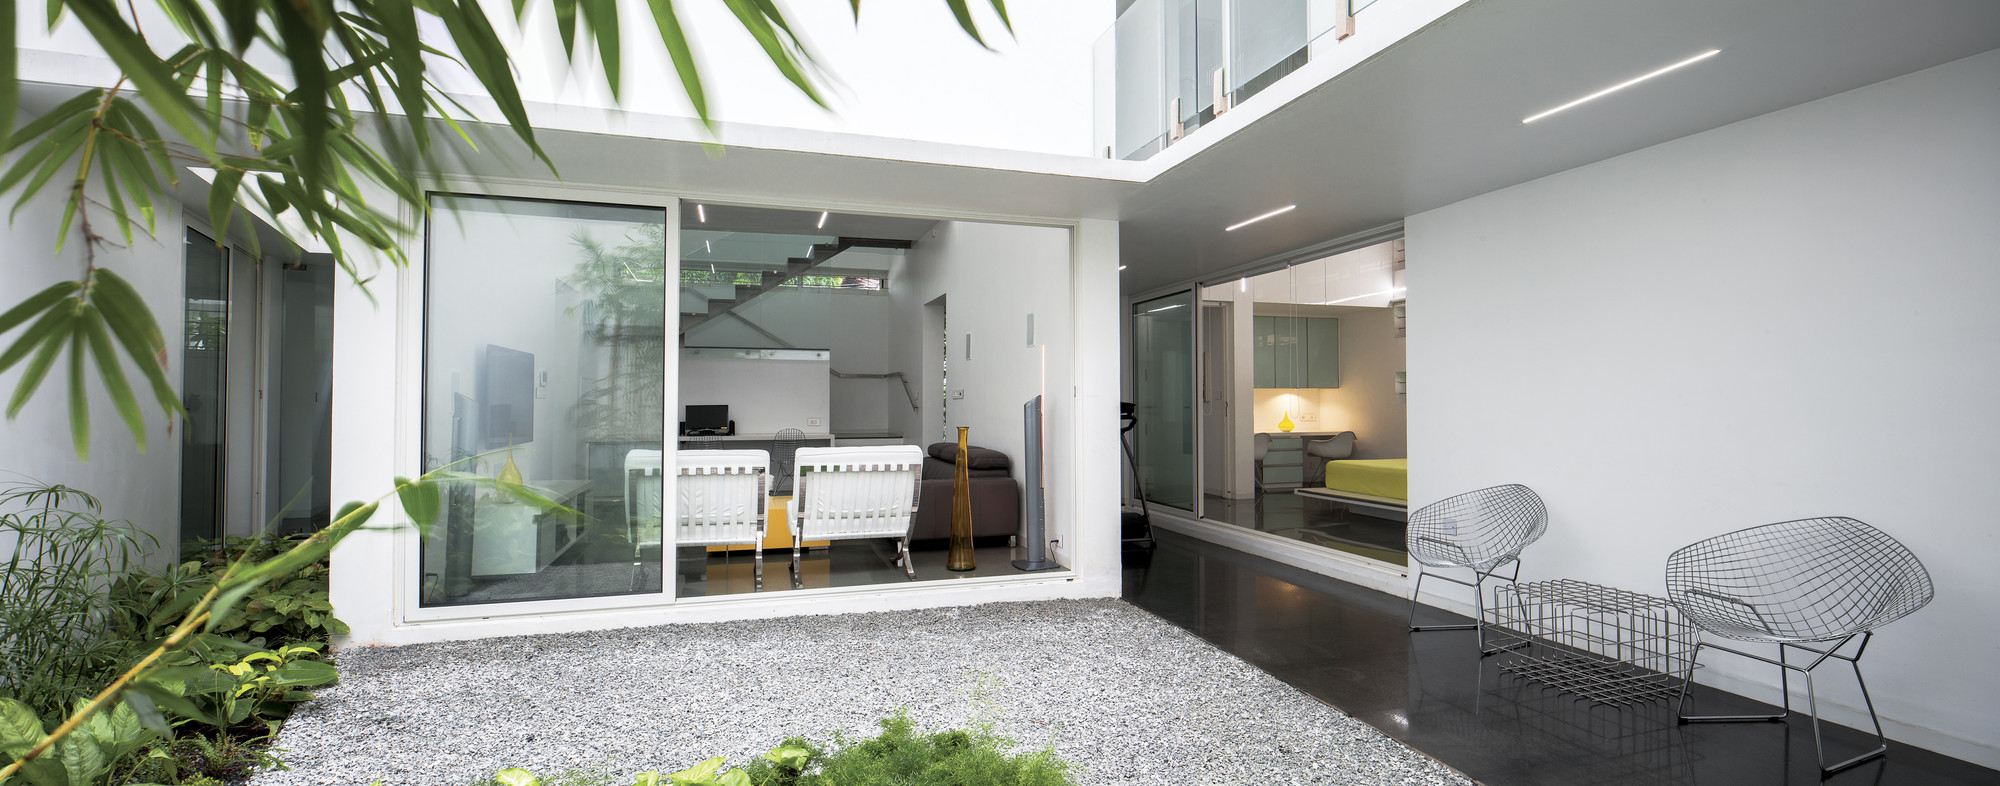 Rooms Home Design